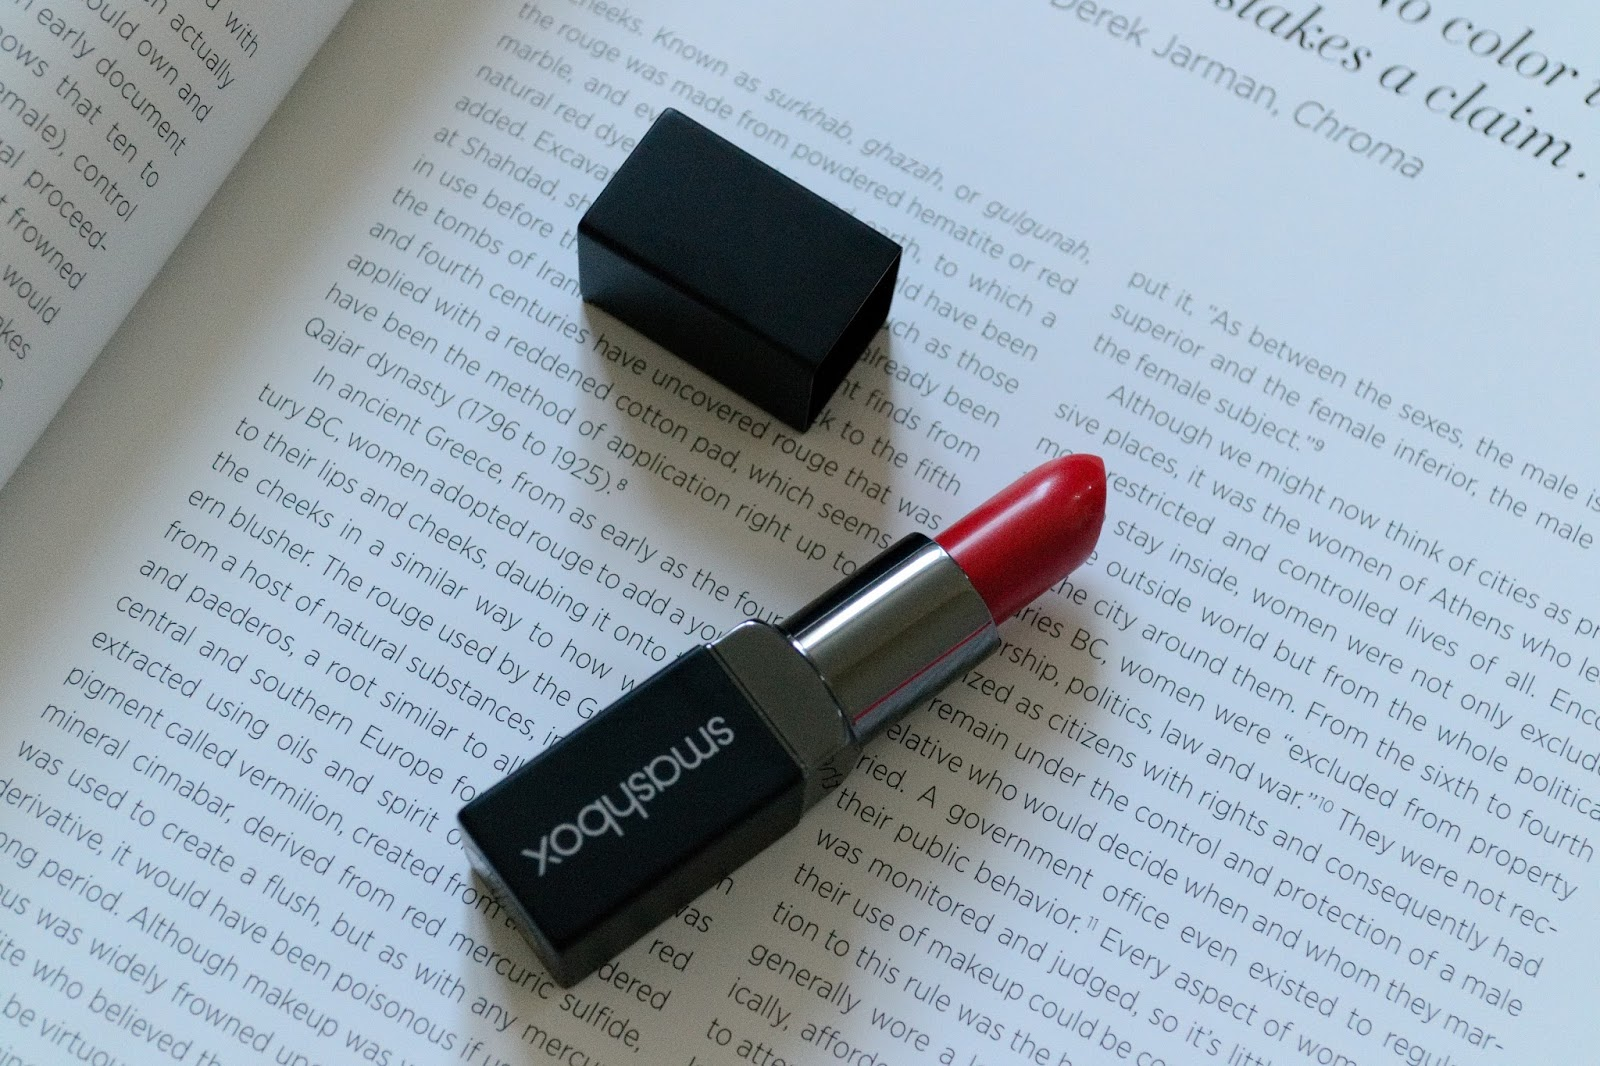 Smashbox Be Legendary Lipstick Get Fired Review - Aspiring Londoner